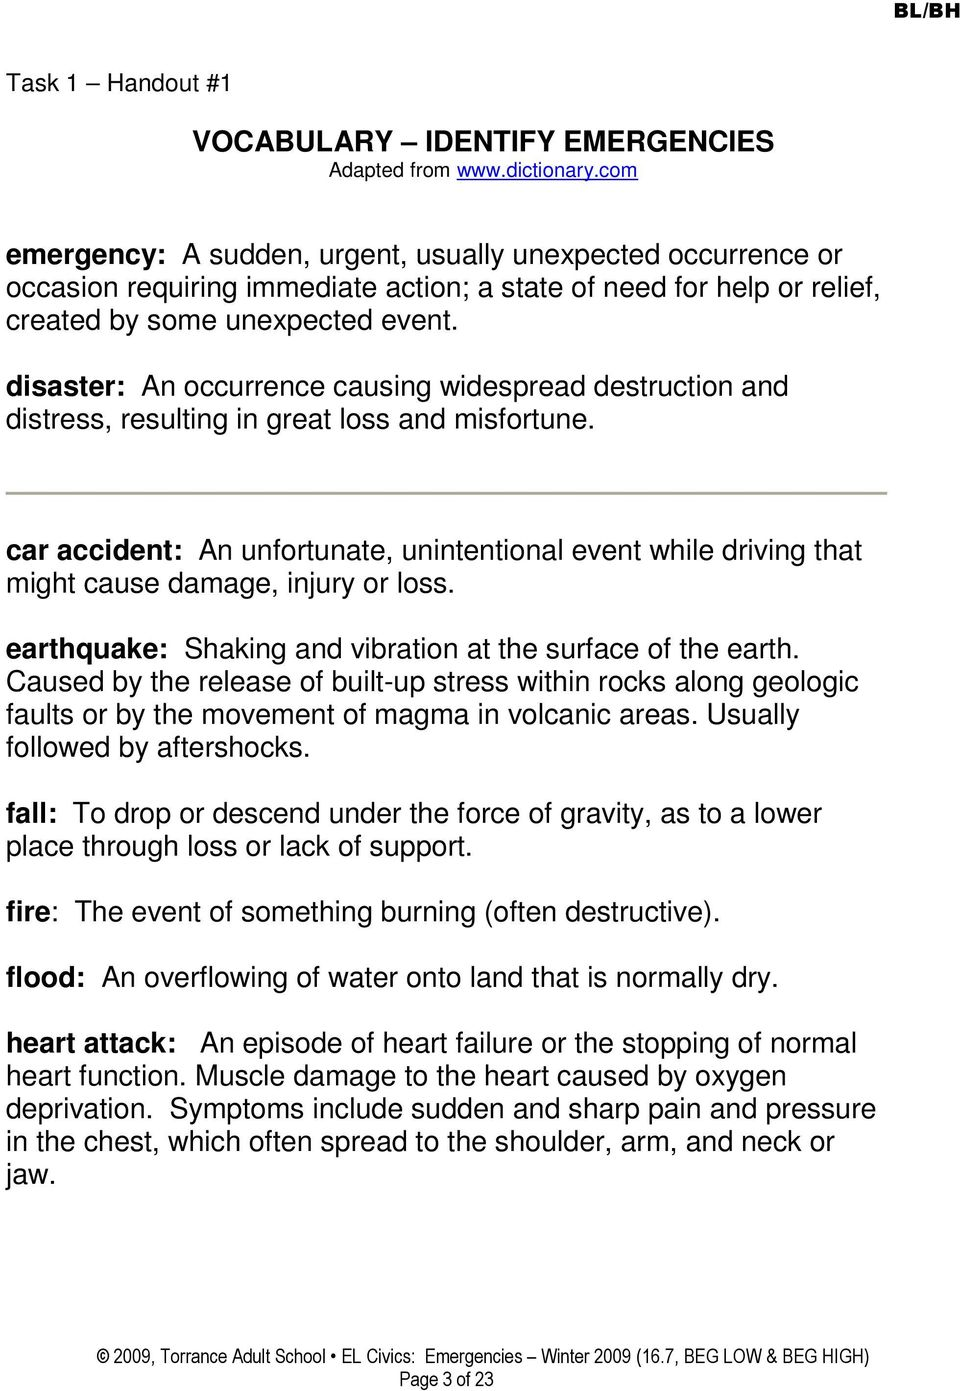 disaster: An occurrence causing widespread destruction and distress, resulting in great loss and misfortune.